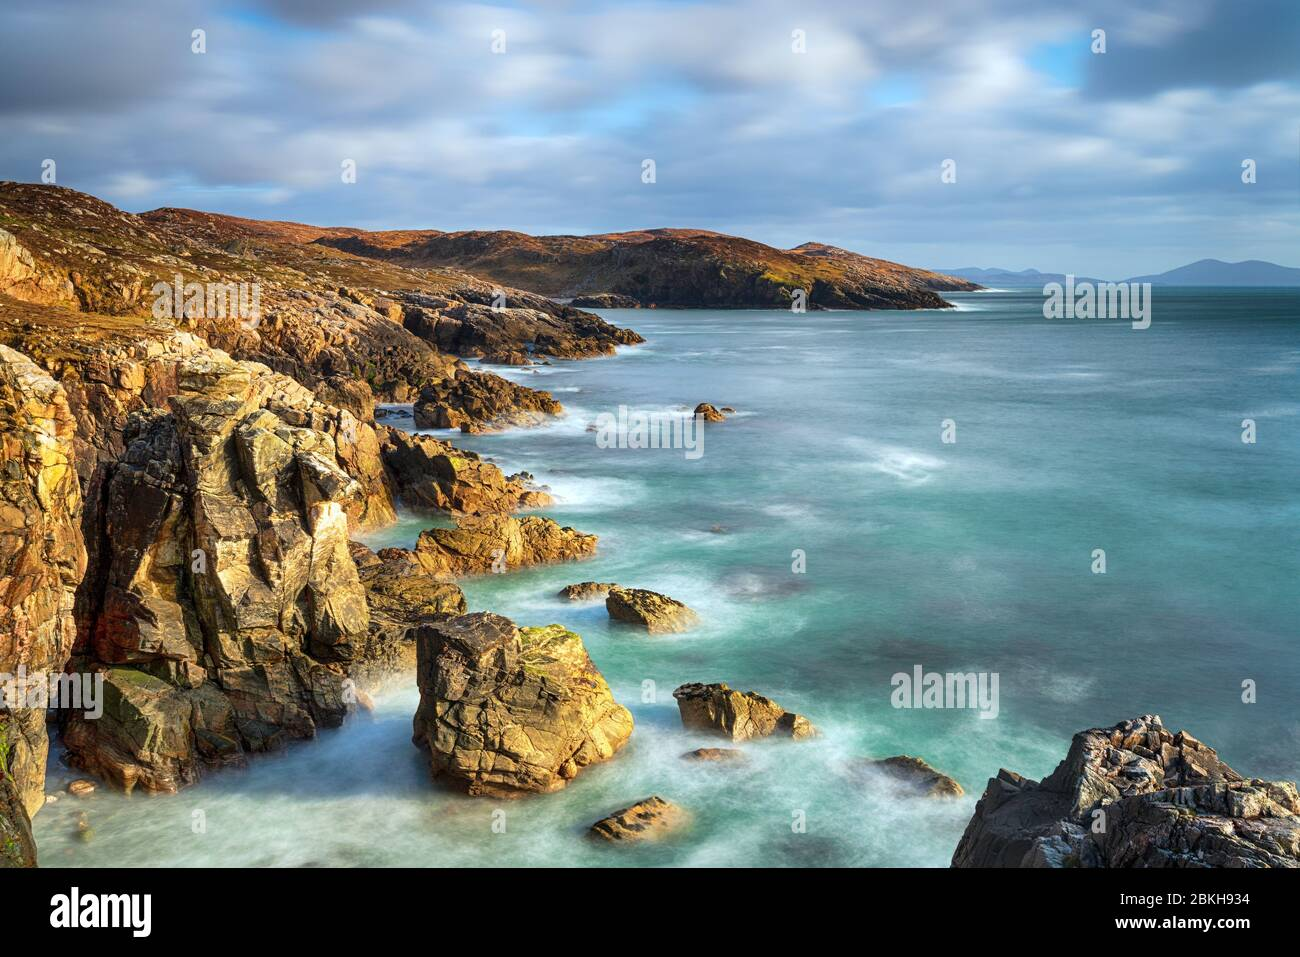 A long exposure of the rocky cliffs at Hushinish on the isle of Harris coast in the Outer Hebrides of Scotland Stock Photo